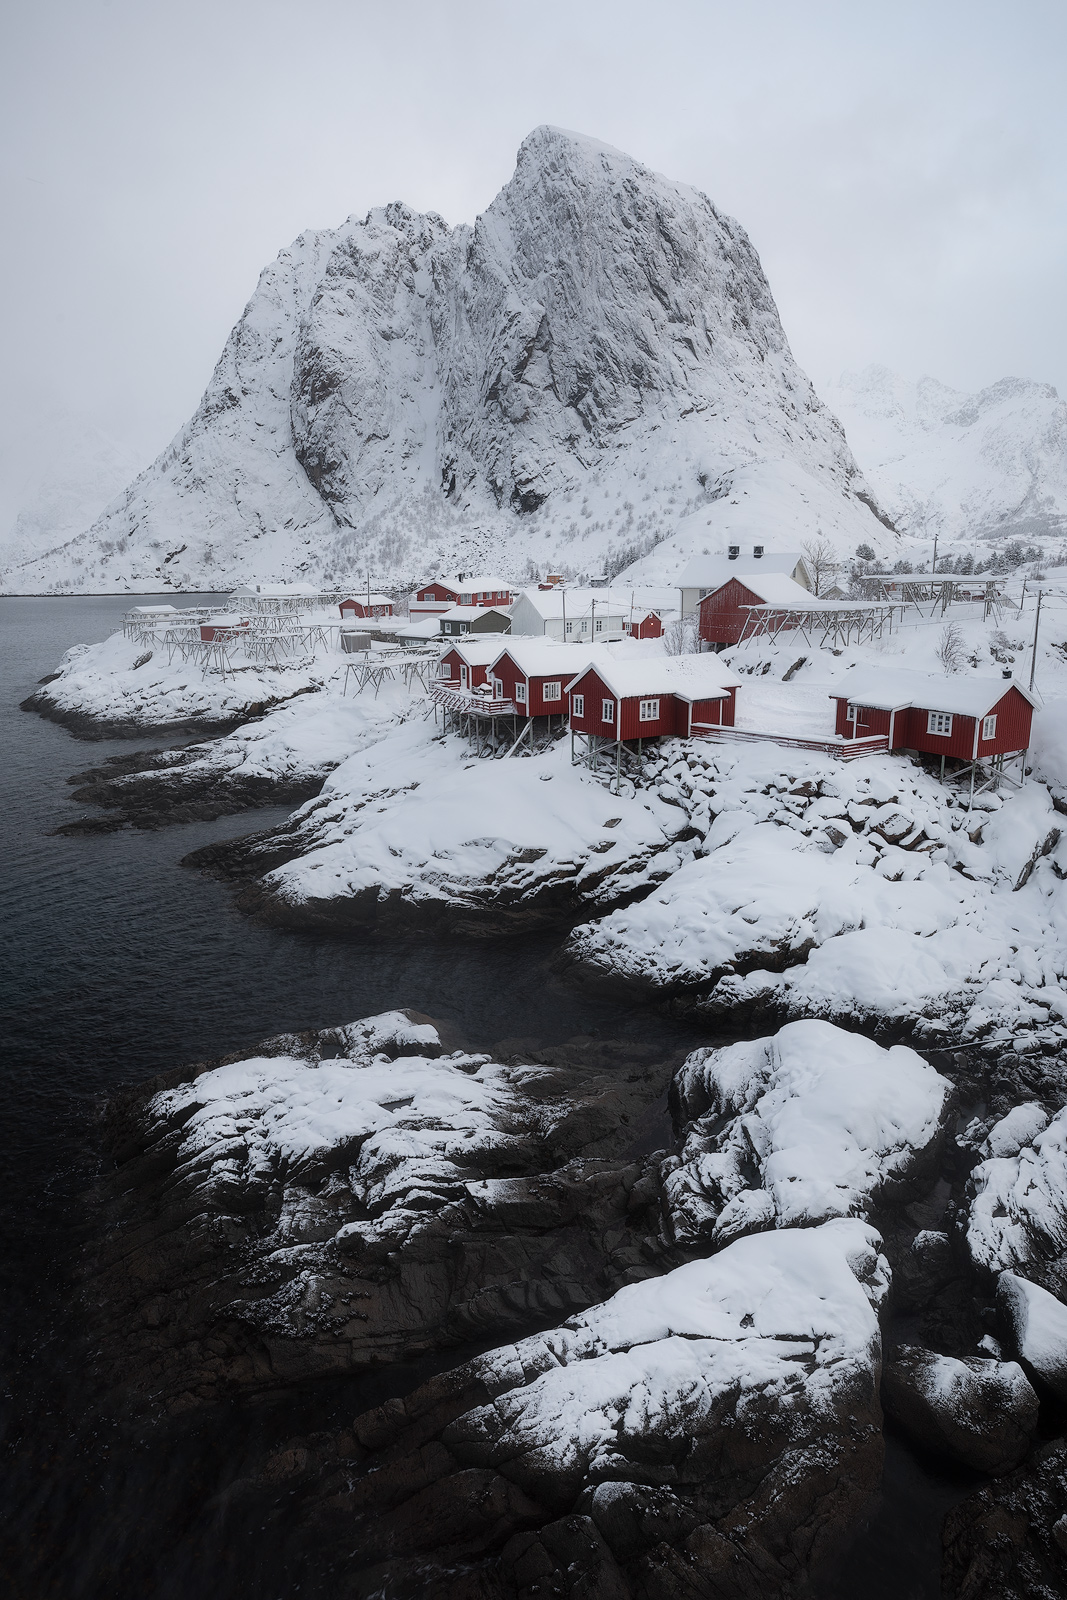 clouds, cloudy, europe, fog, foggy, frost, hamnoy, ice, landscape, lofoten, misty, moskenesøy, norway, rocks, scandinavia, scenic, seashore, snow, snowy, winter, photo